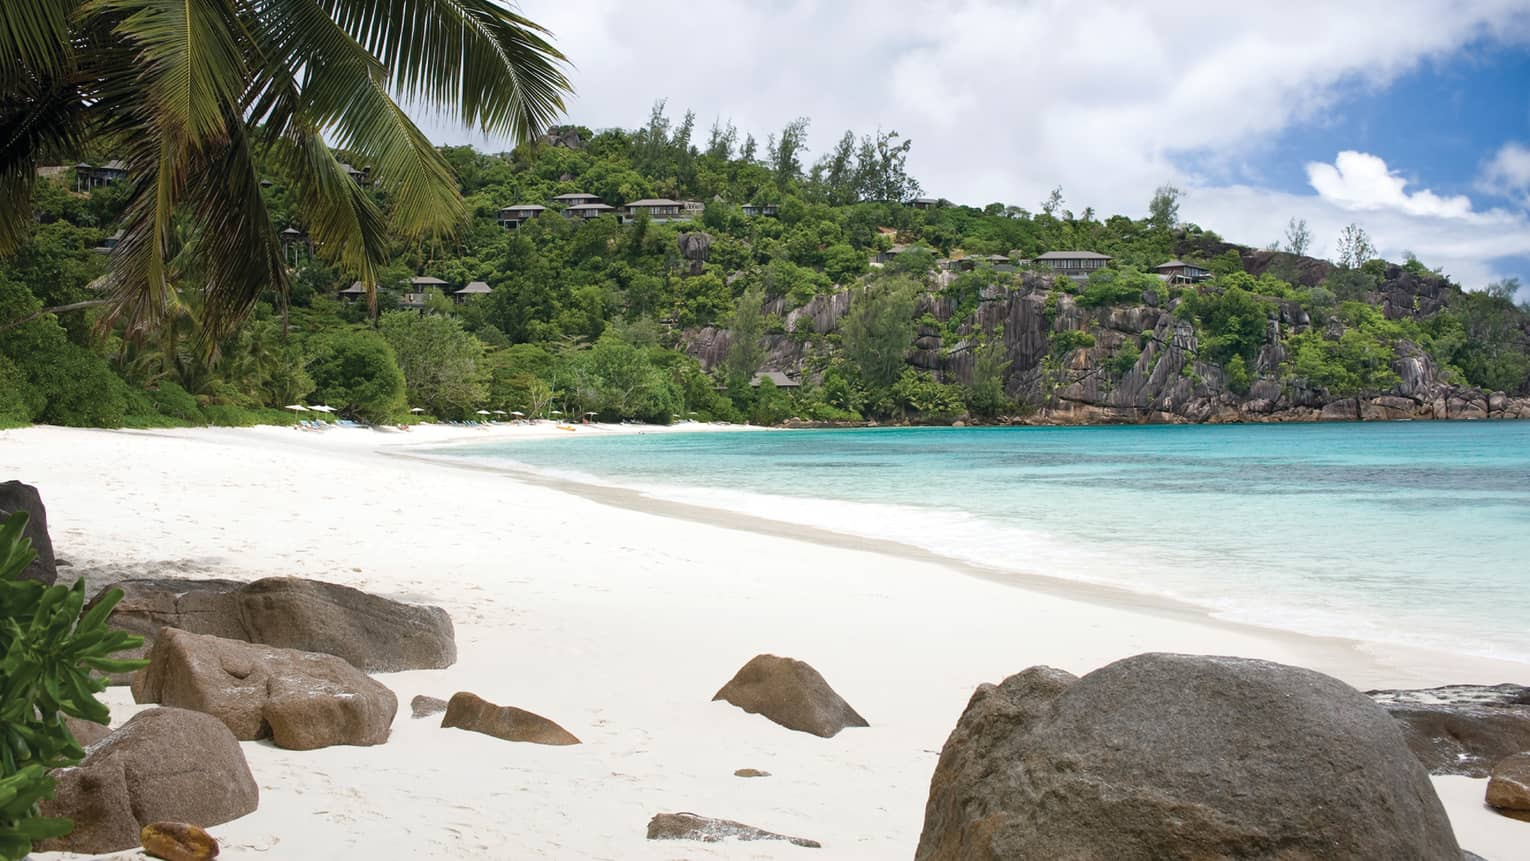 White sand beach with boulders, turquoise tide, palm trees on sunny day